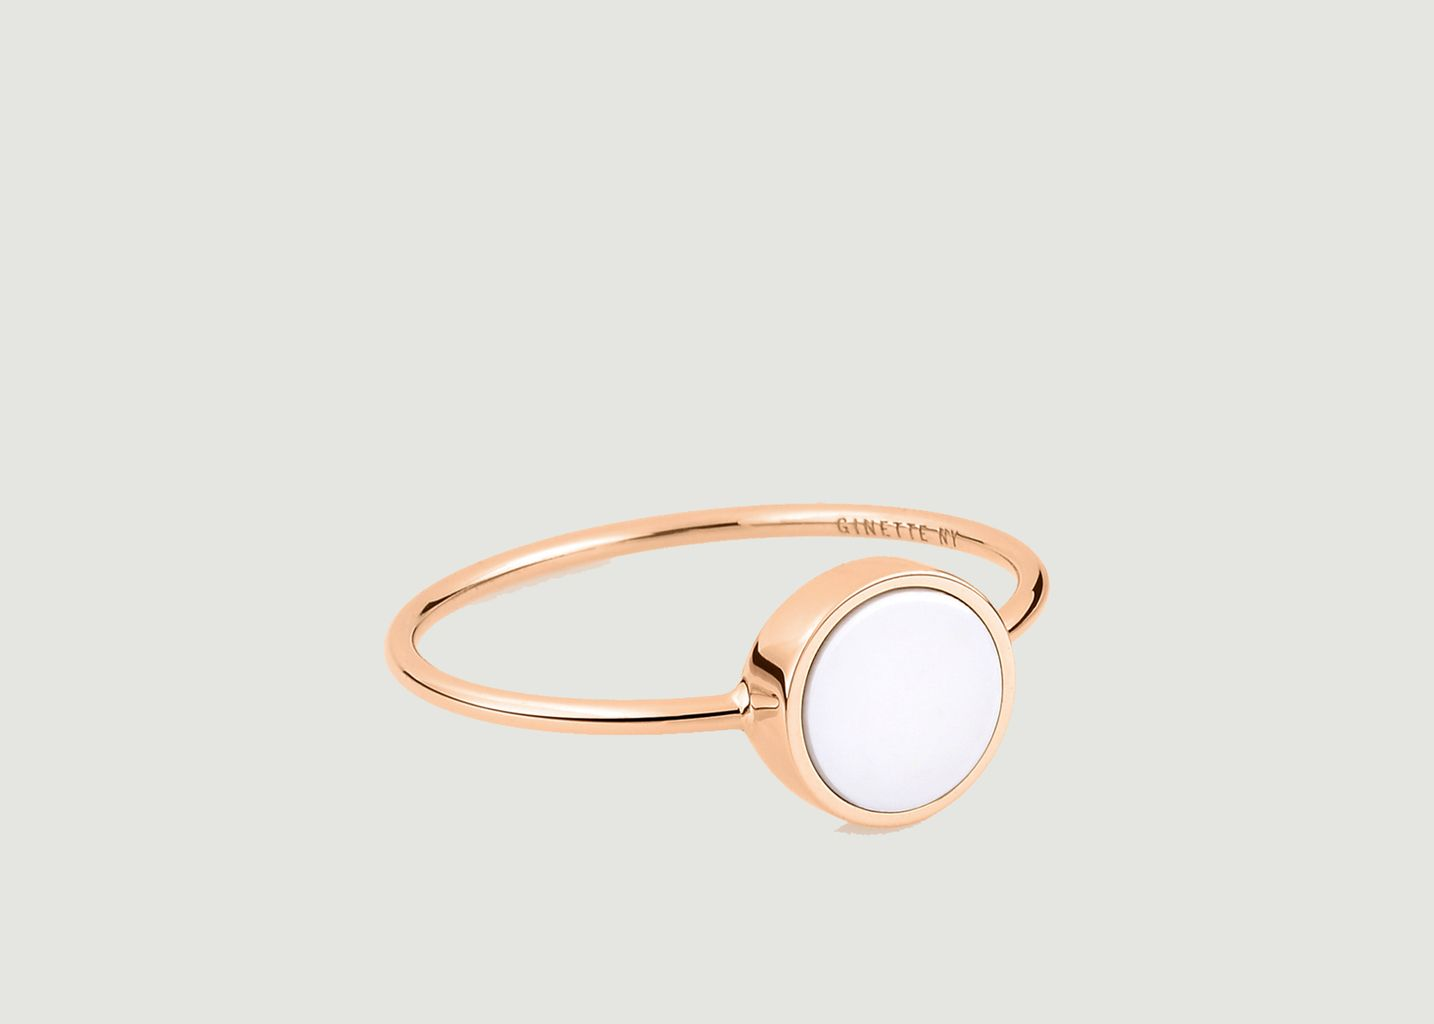 Bague Ever Disc agathe - Ginette NY